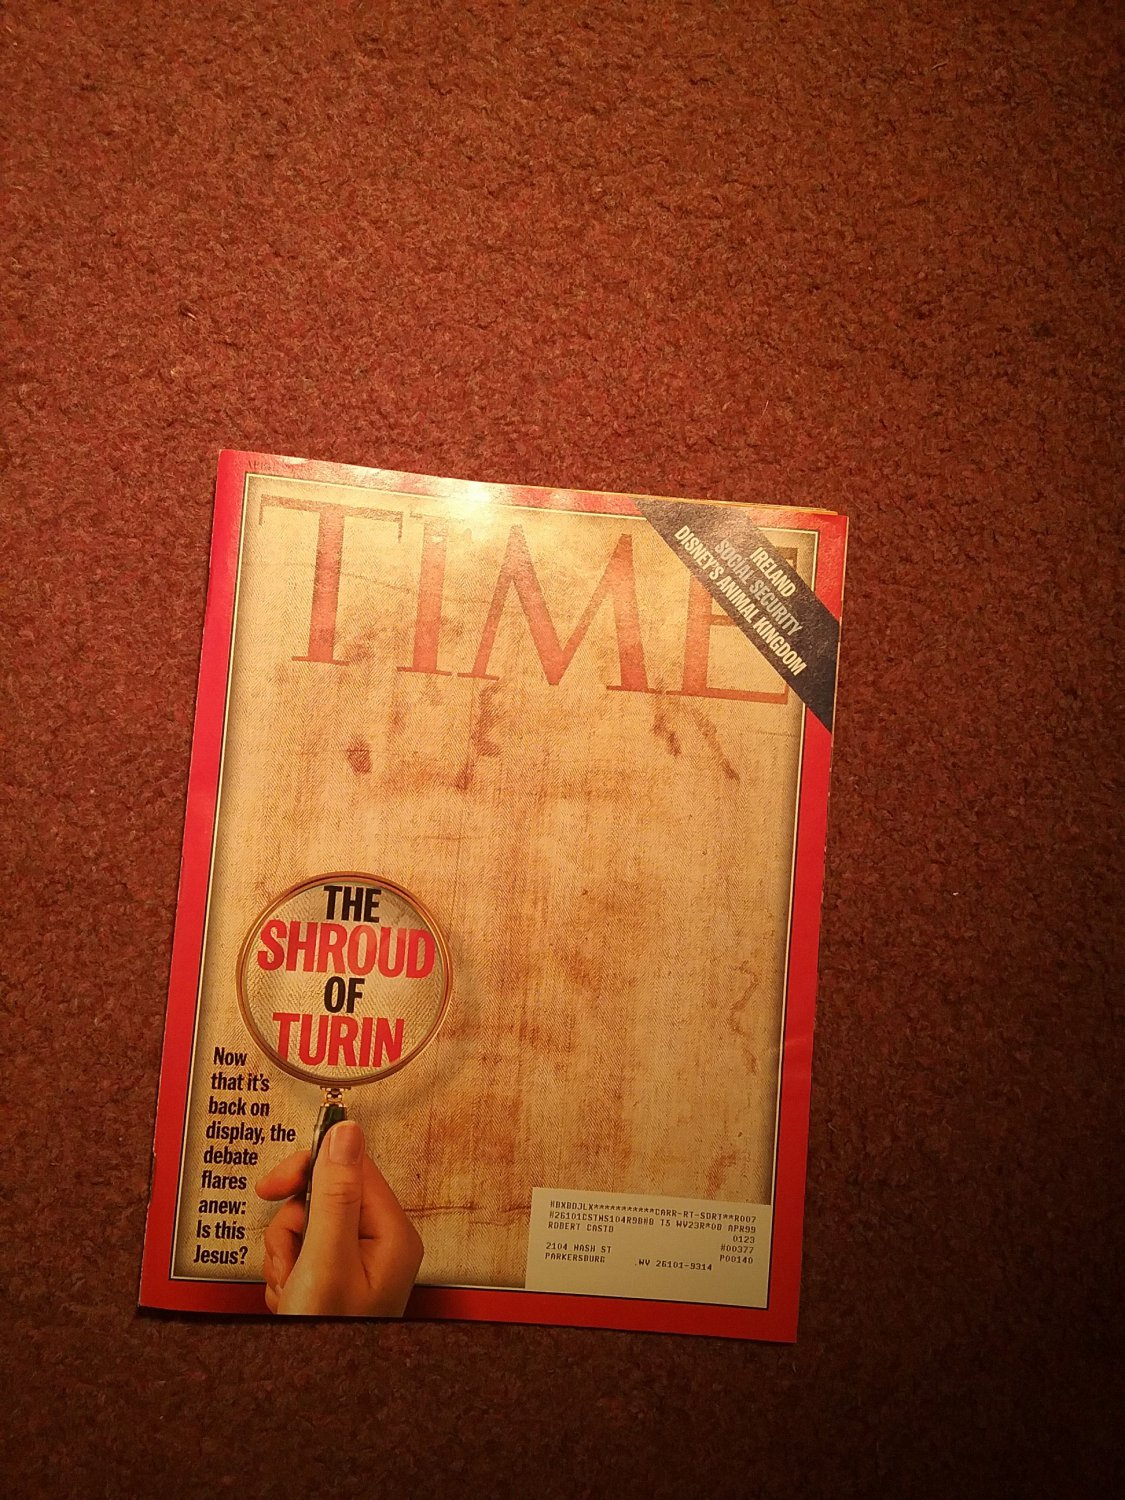 Time Magazine, April 20, 1998, The Shroud of Turin   0707161465